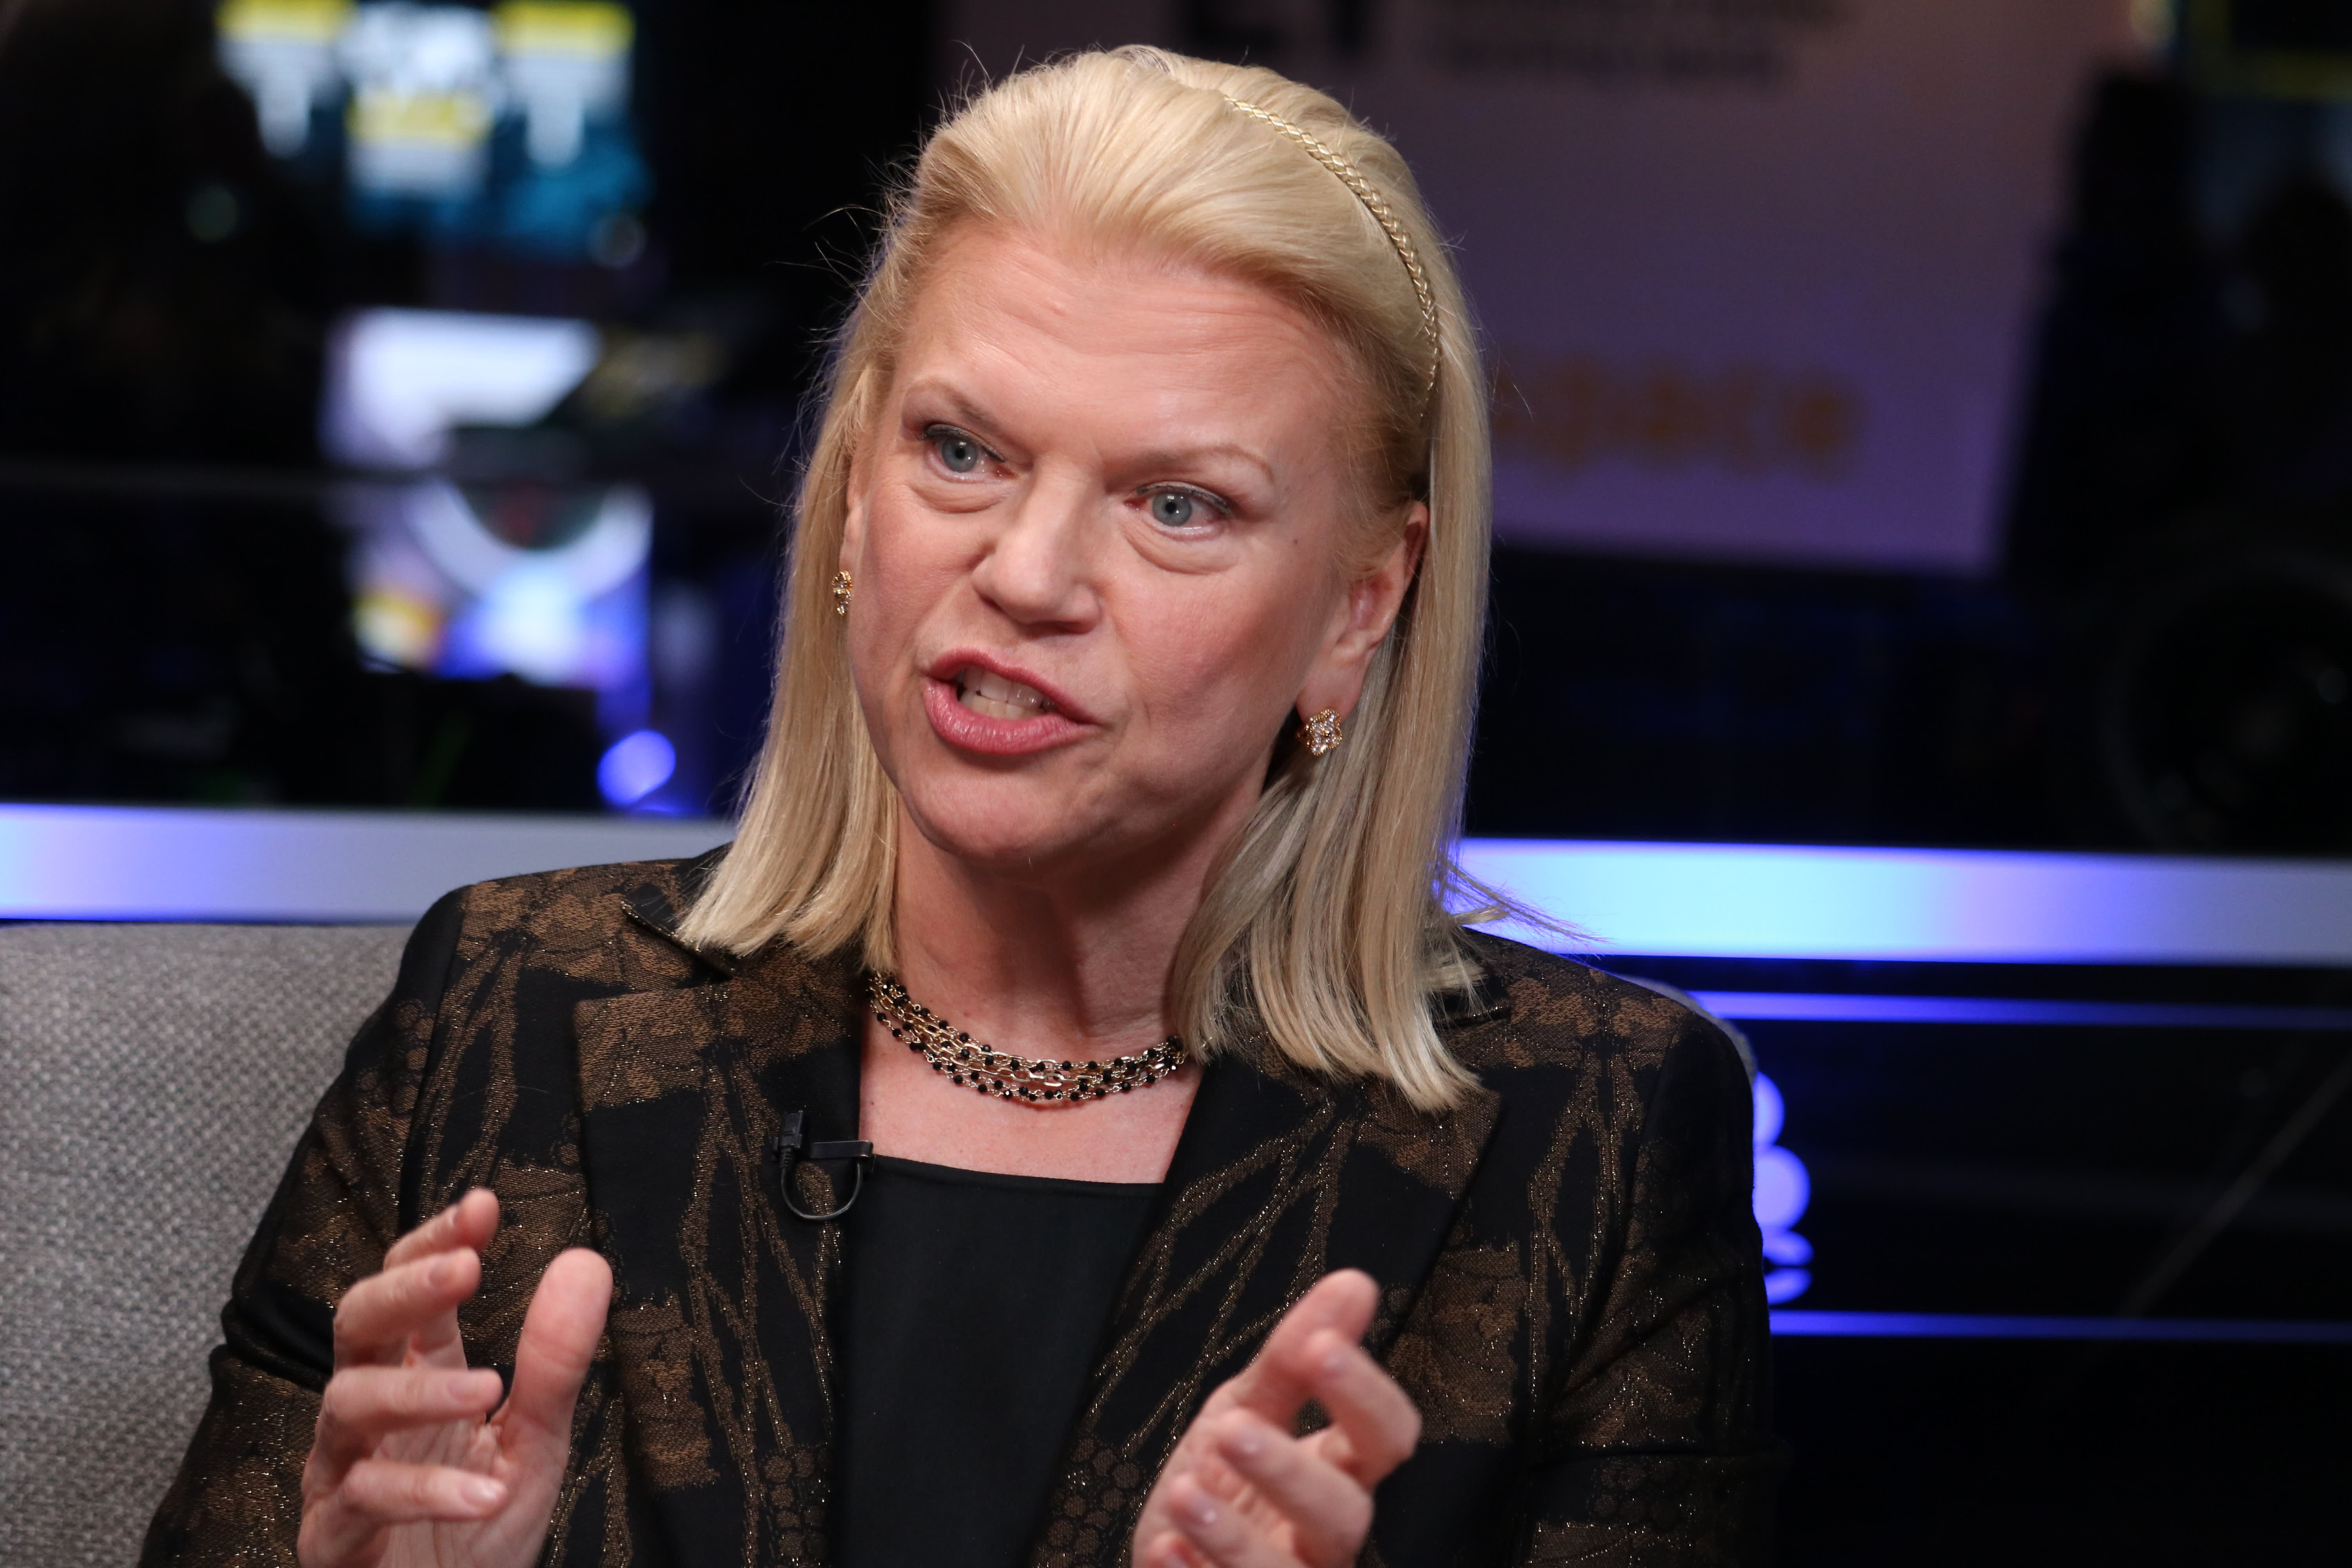 IBM's Ginni Rometty says automobile brands are becoming less important